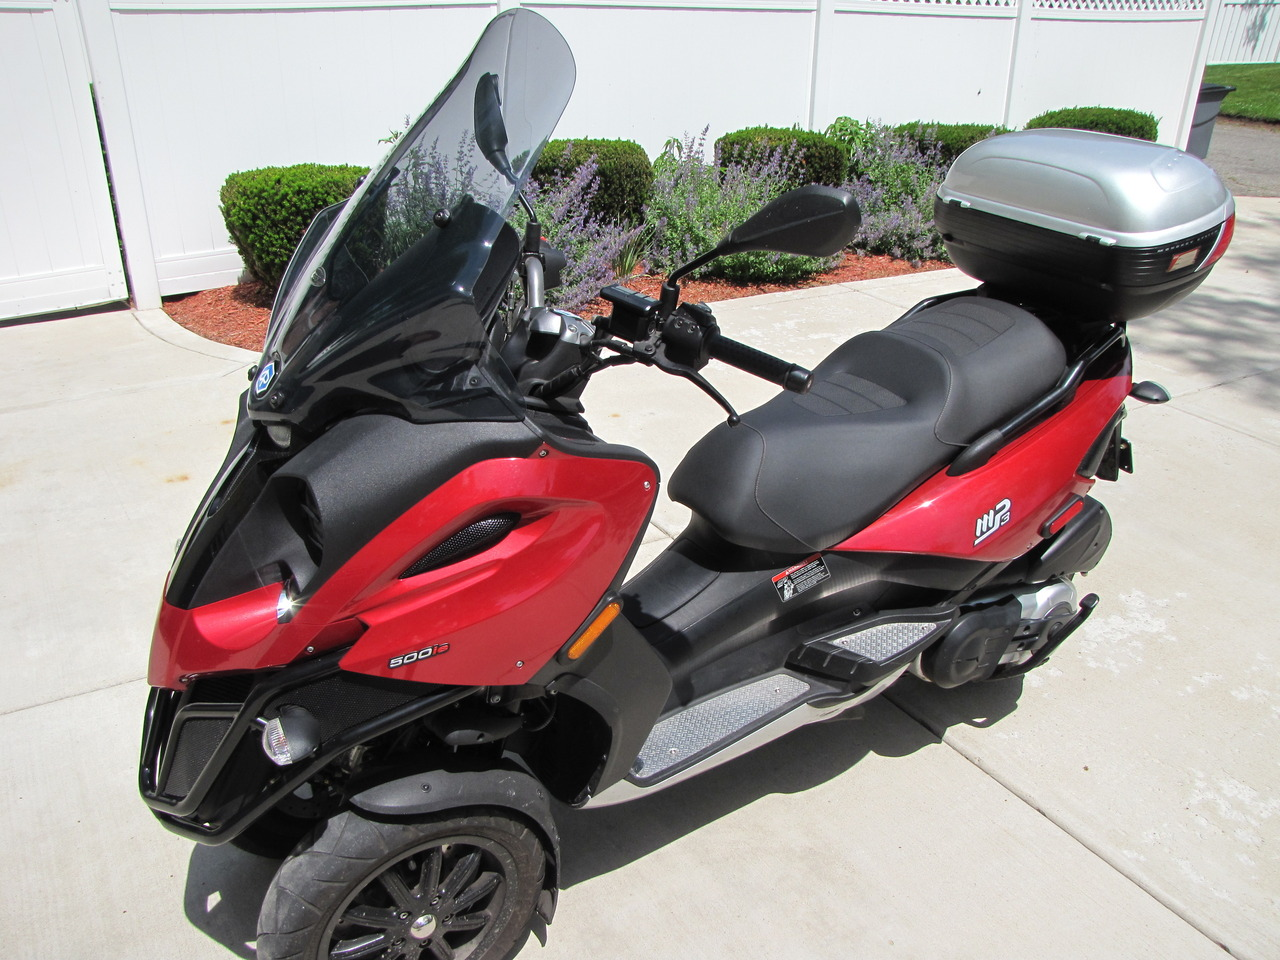 2008 Piaggio Mp3 500, motorcycle listing